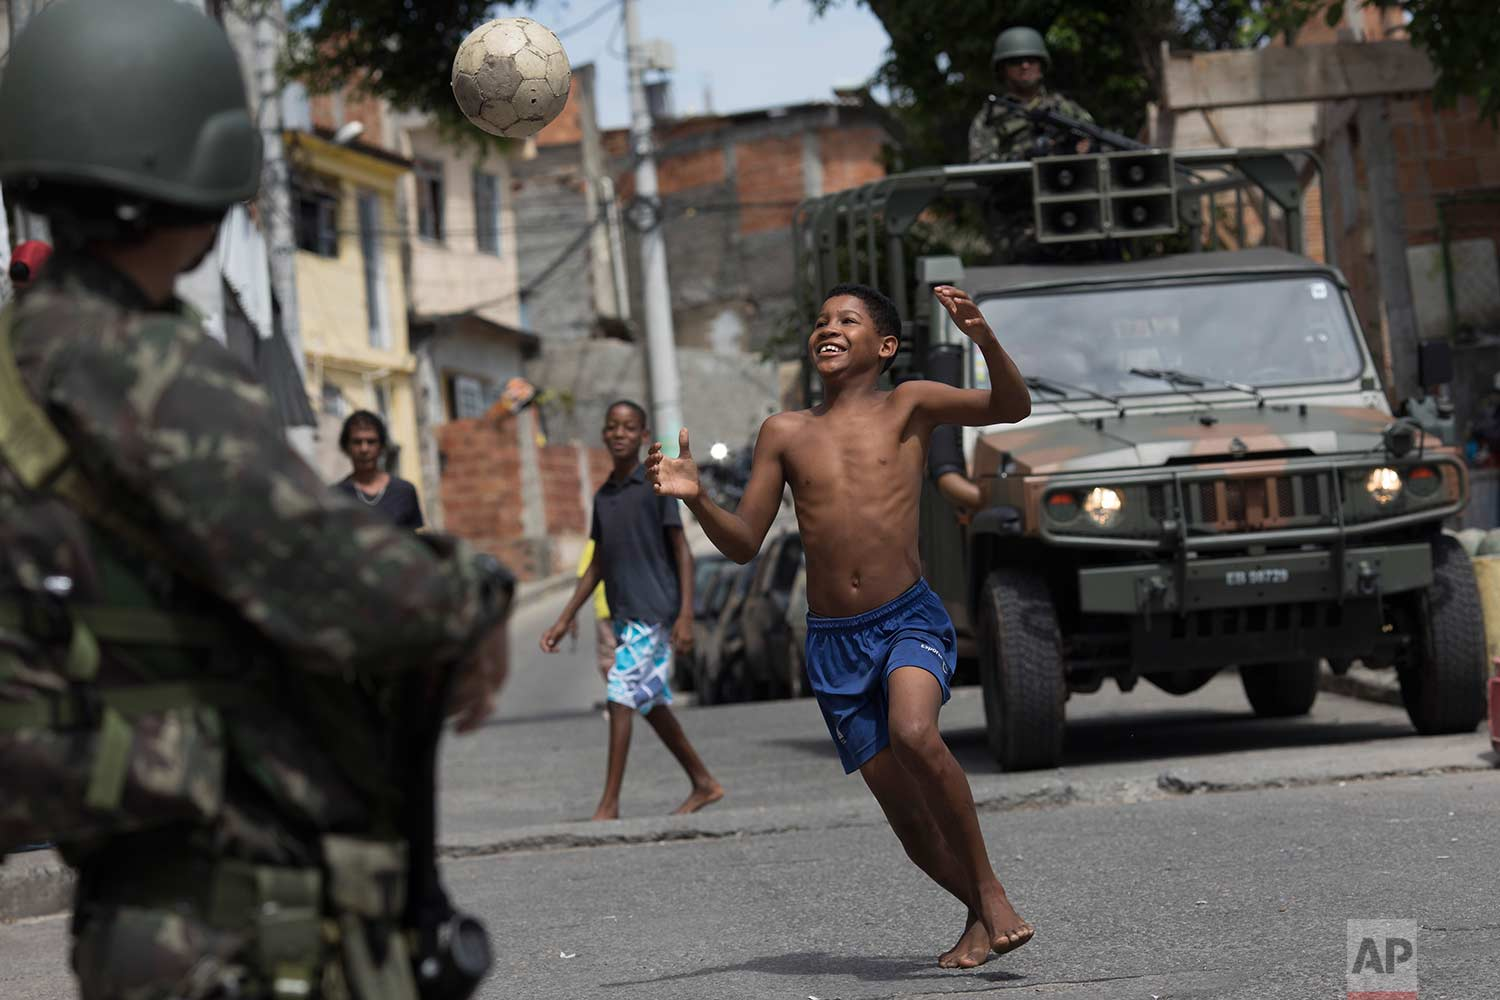 A boy plays soccer next to soldiers on patrol during an operation in the Mangueira slum in Rio de Janeiro, Brazil, Wednesday, Dec. 6, 2017.(AP Photo/Leo Correa)